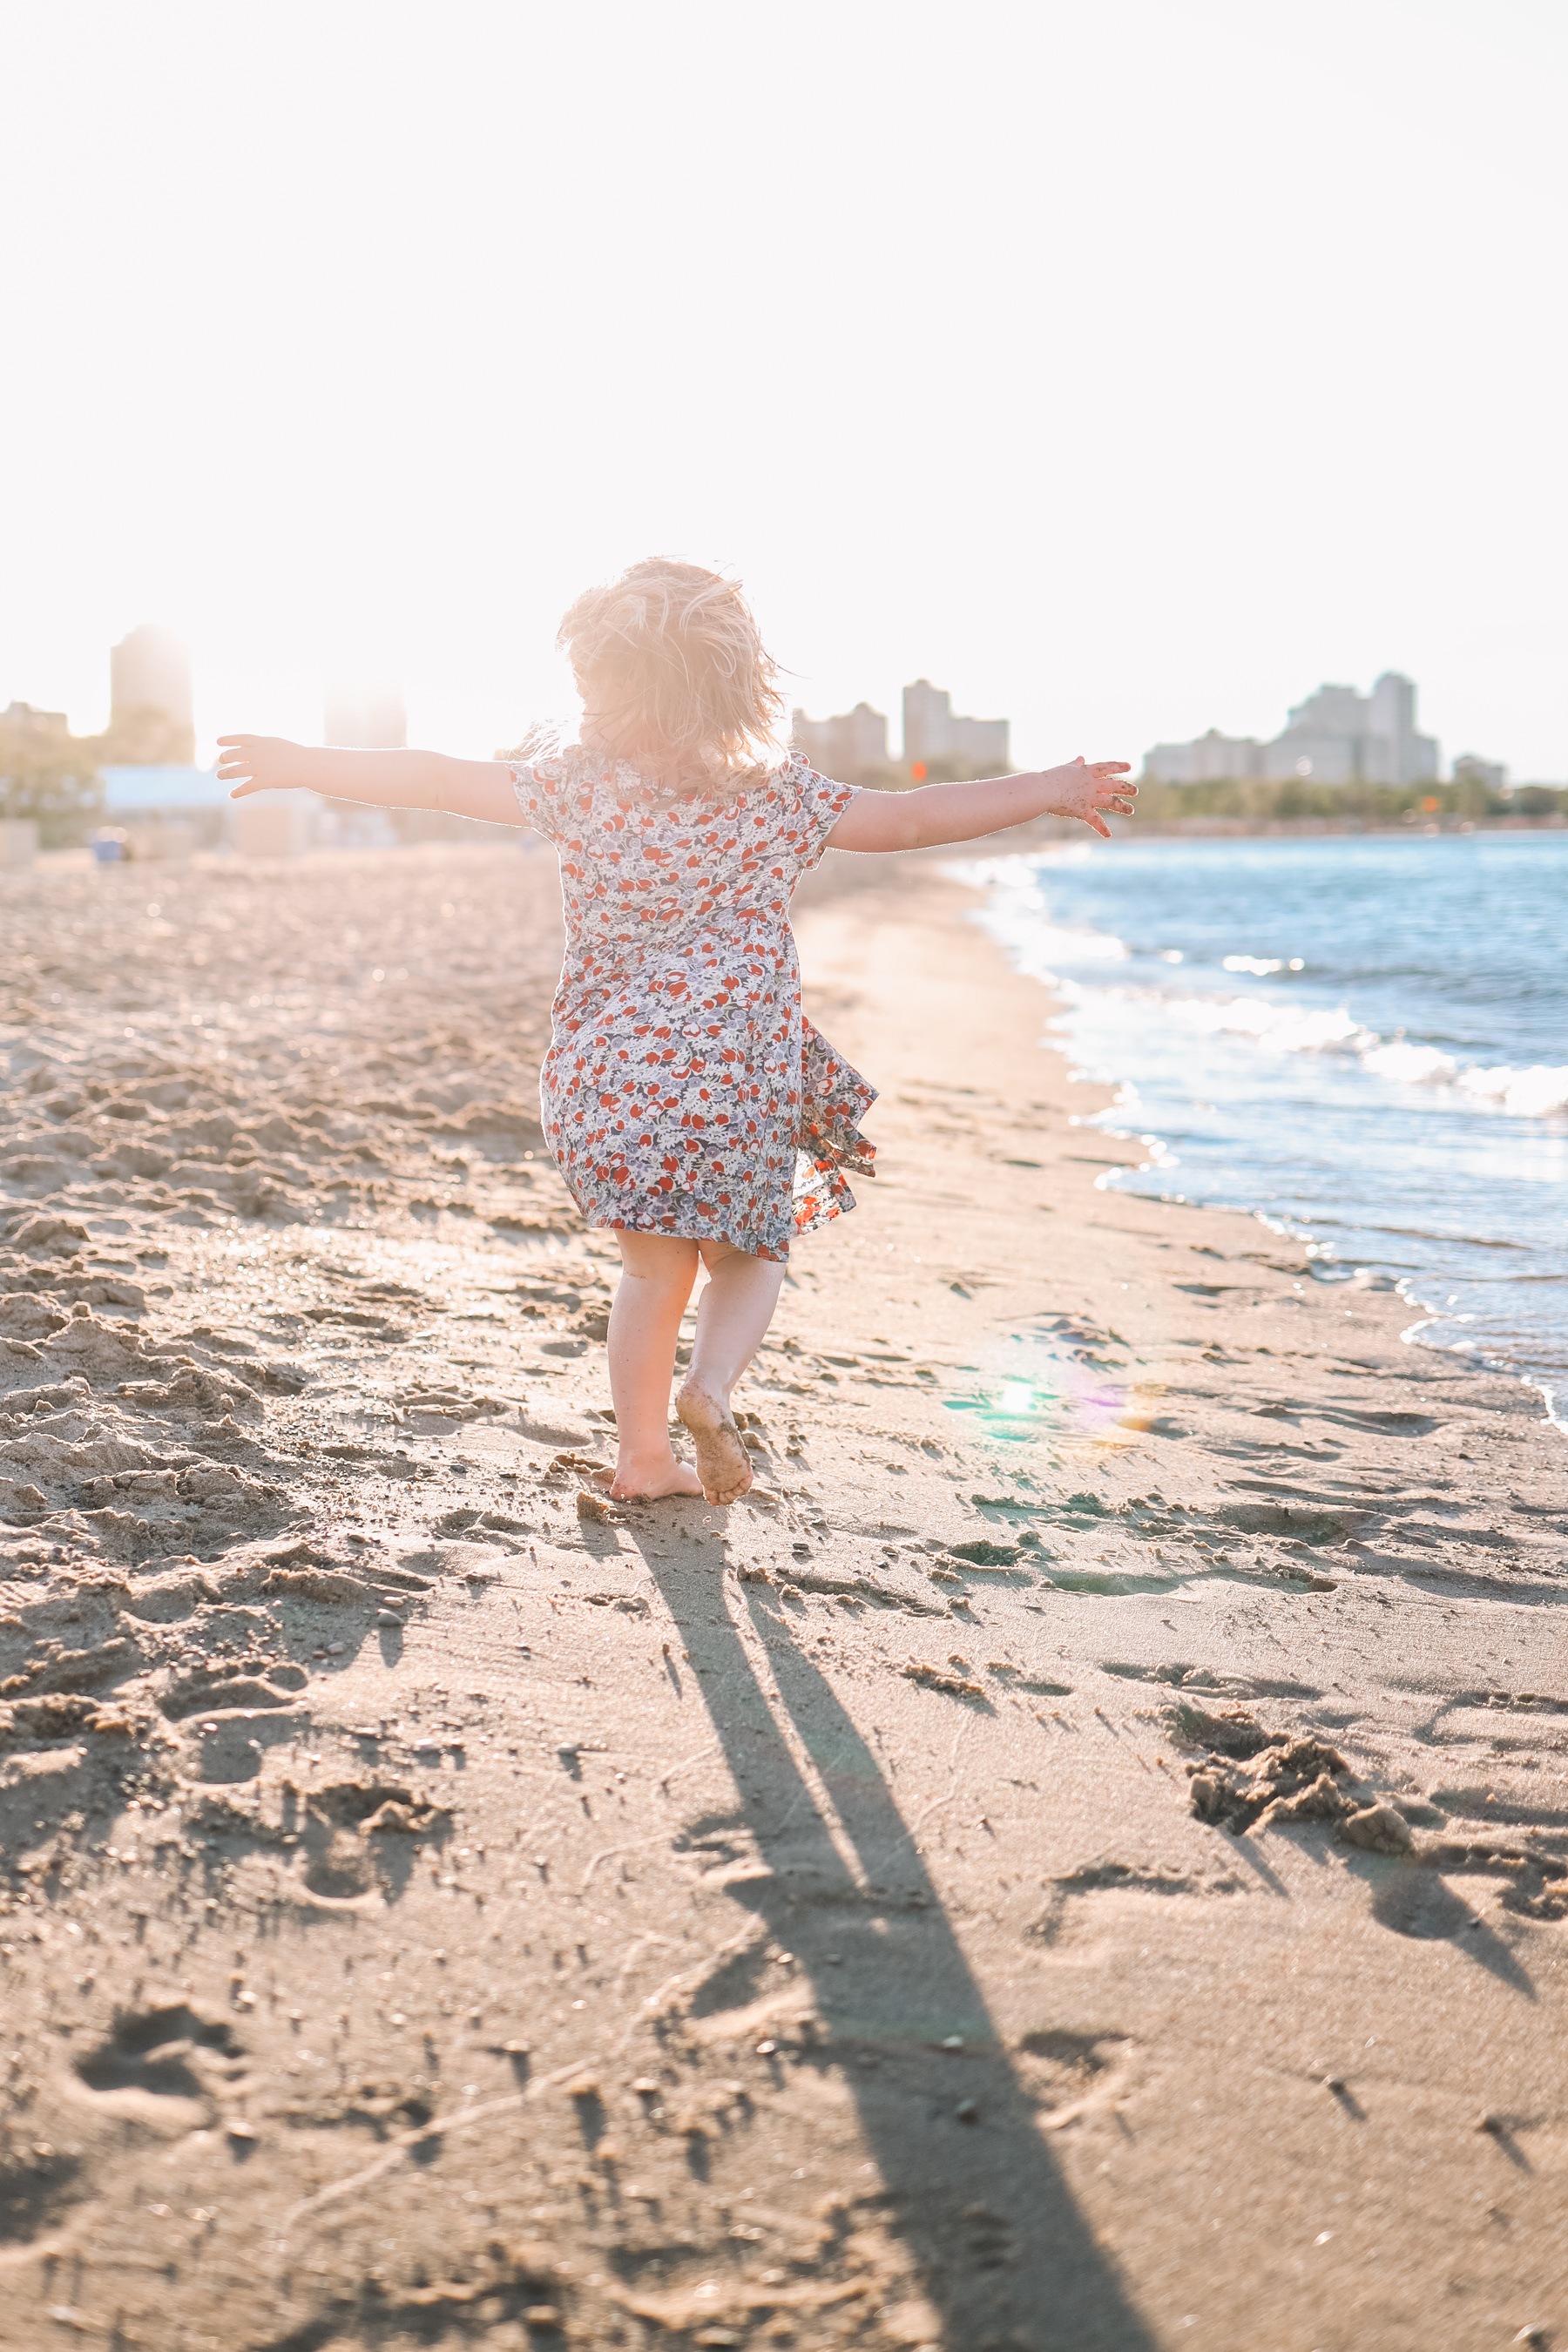 Emma is playing at the beach in Chicago